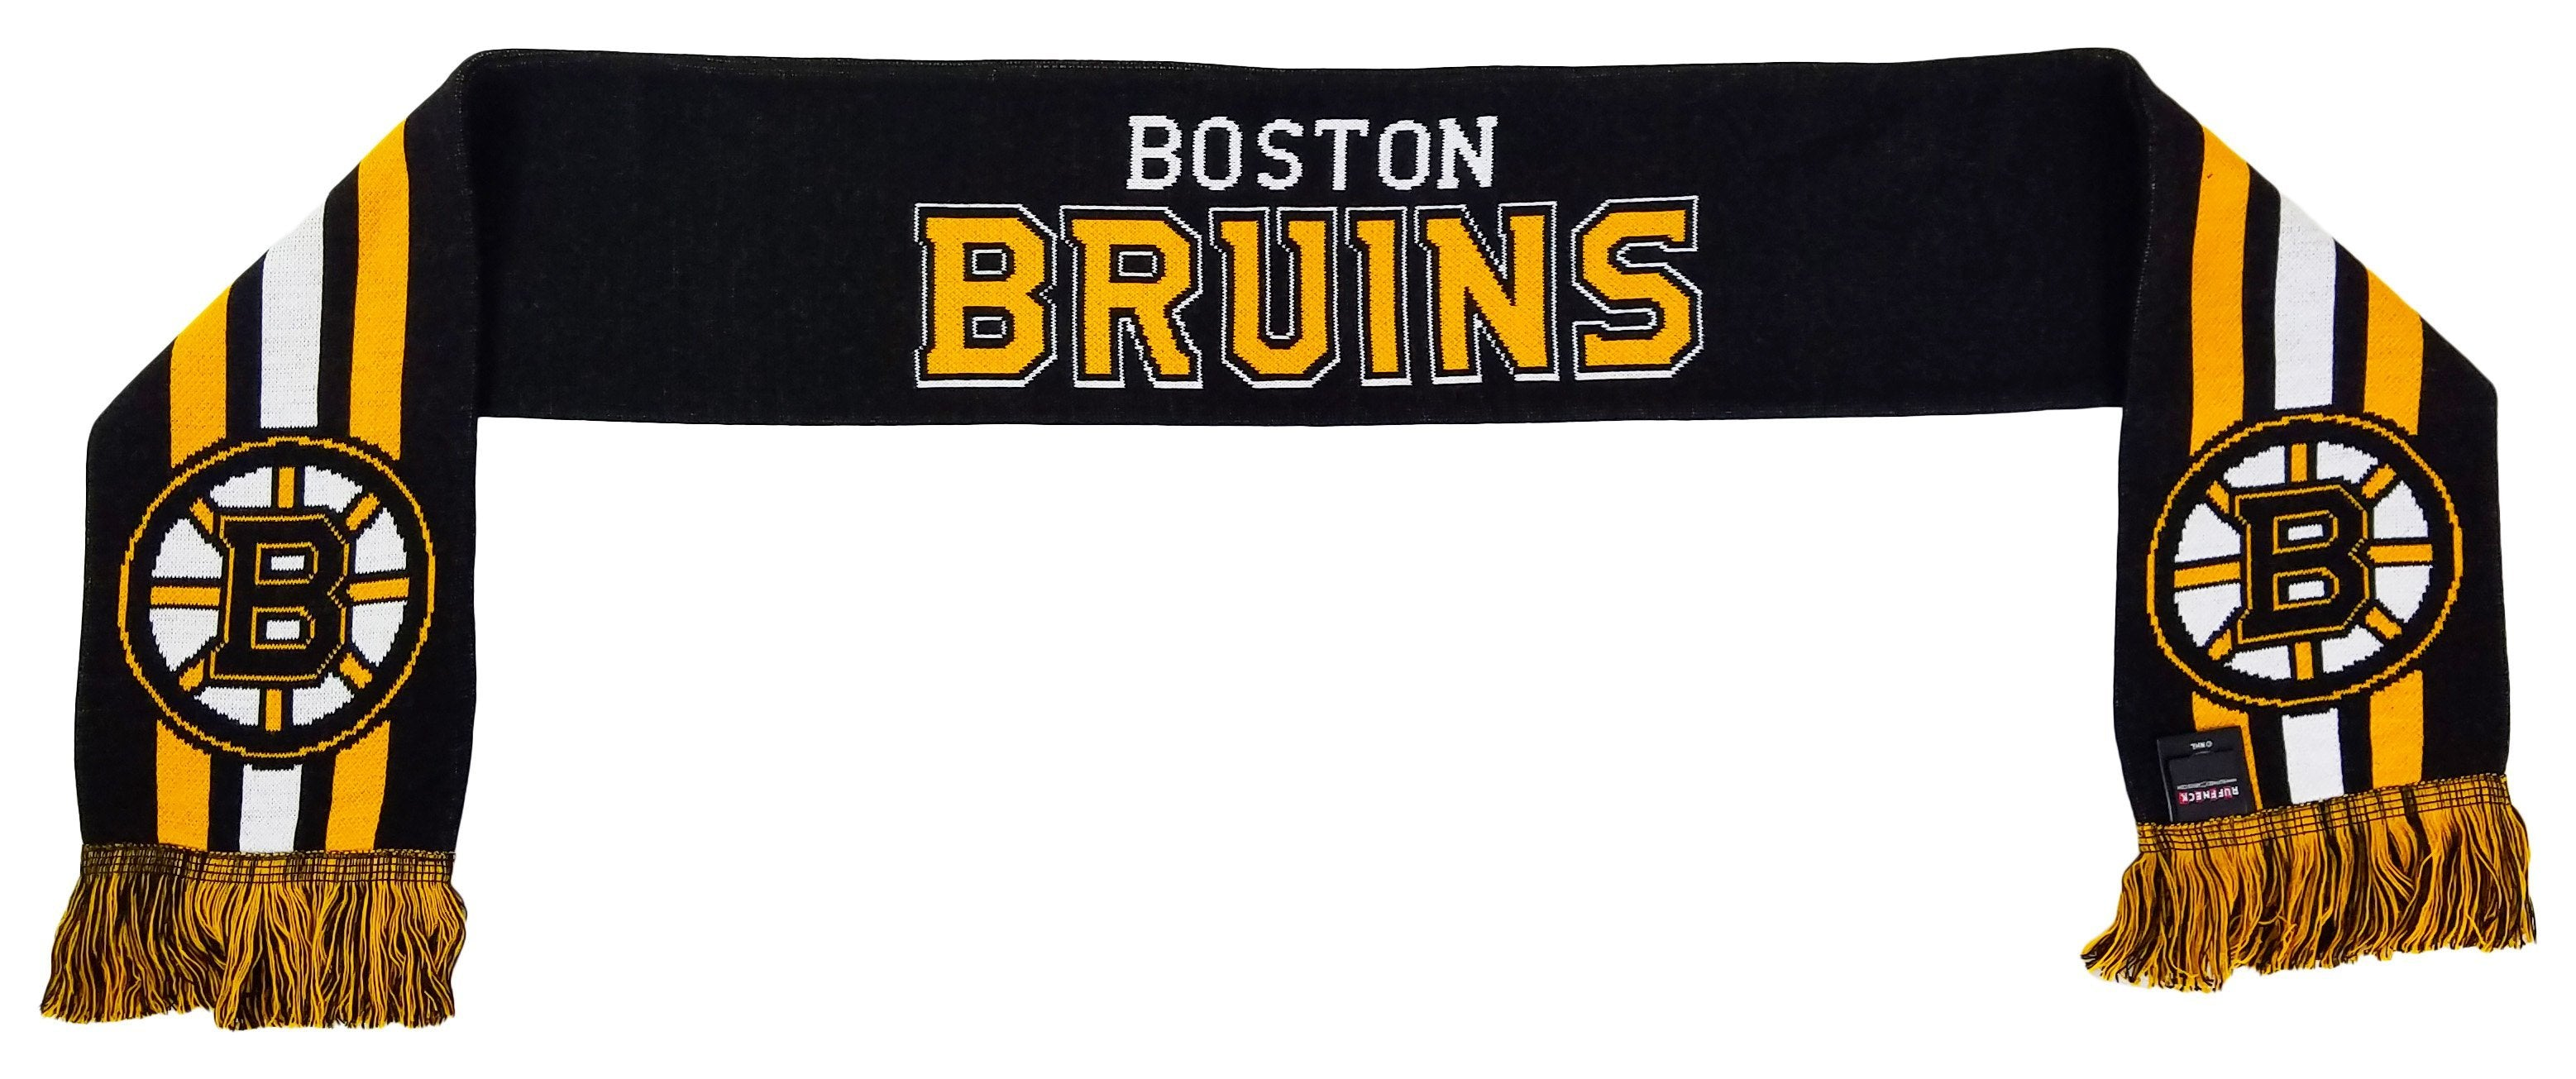 BOSTON BRUINS SCARF - Home Jersey